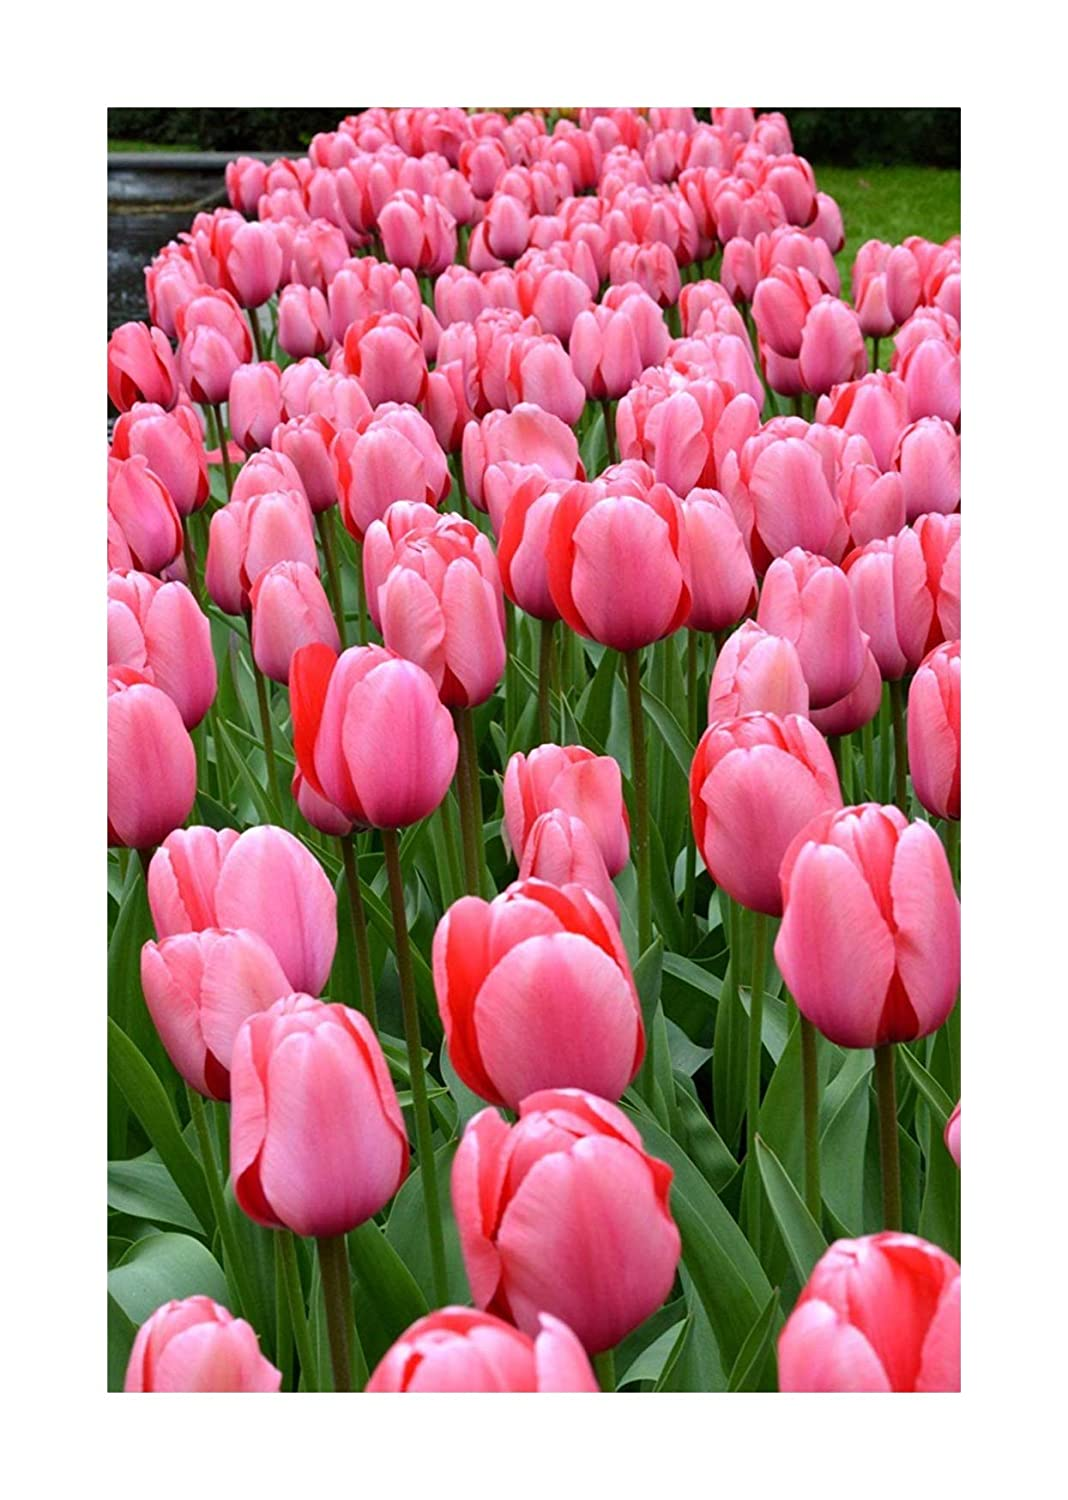 25 Tulip 'Pink Impression' Tulips Spring Flowering Bulbs, Flowering Guarantee by Plug Plants Express Limited